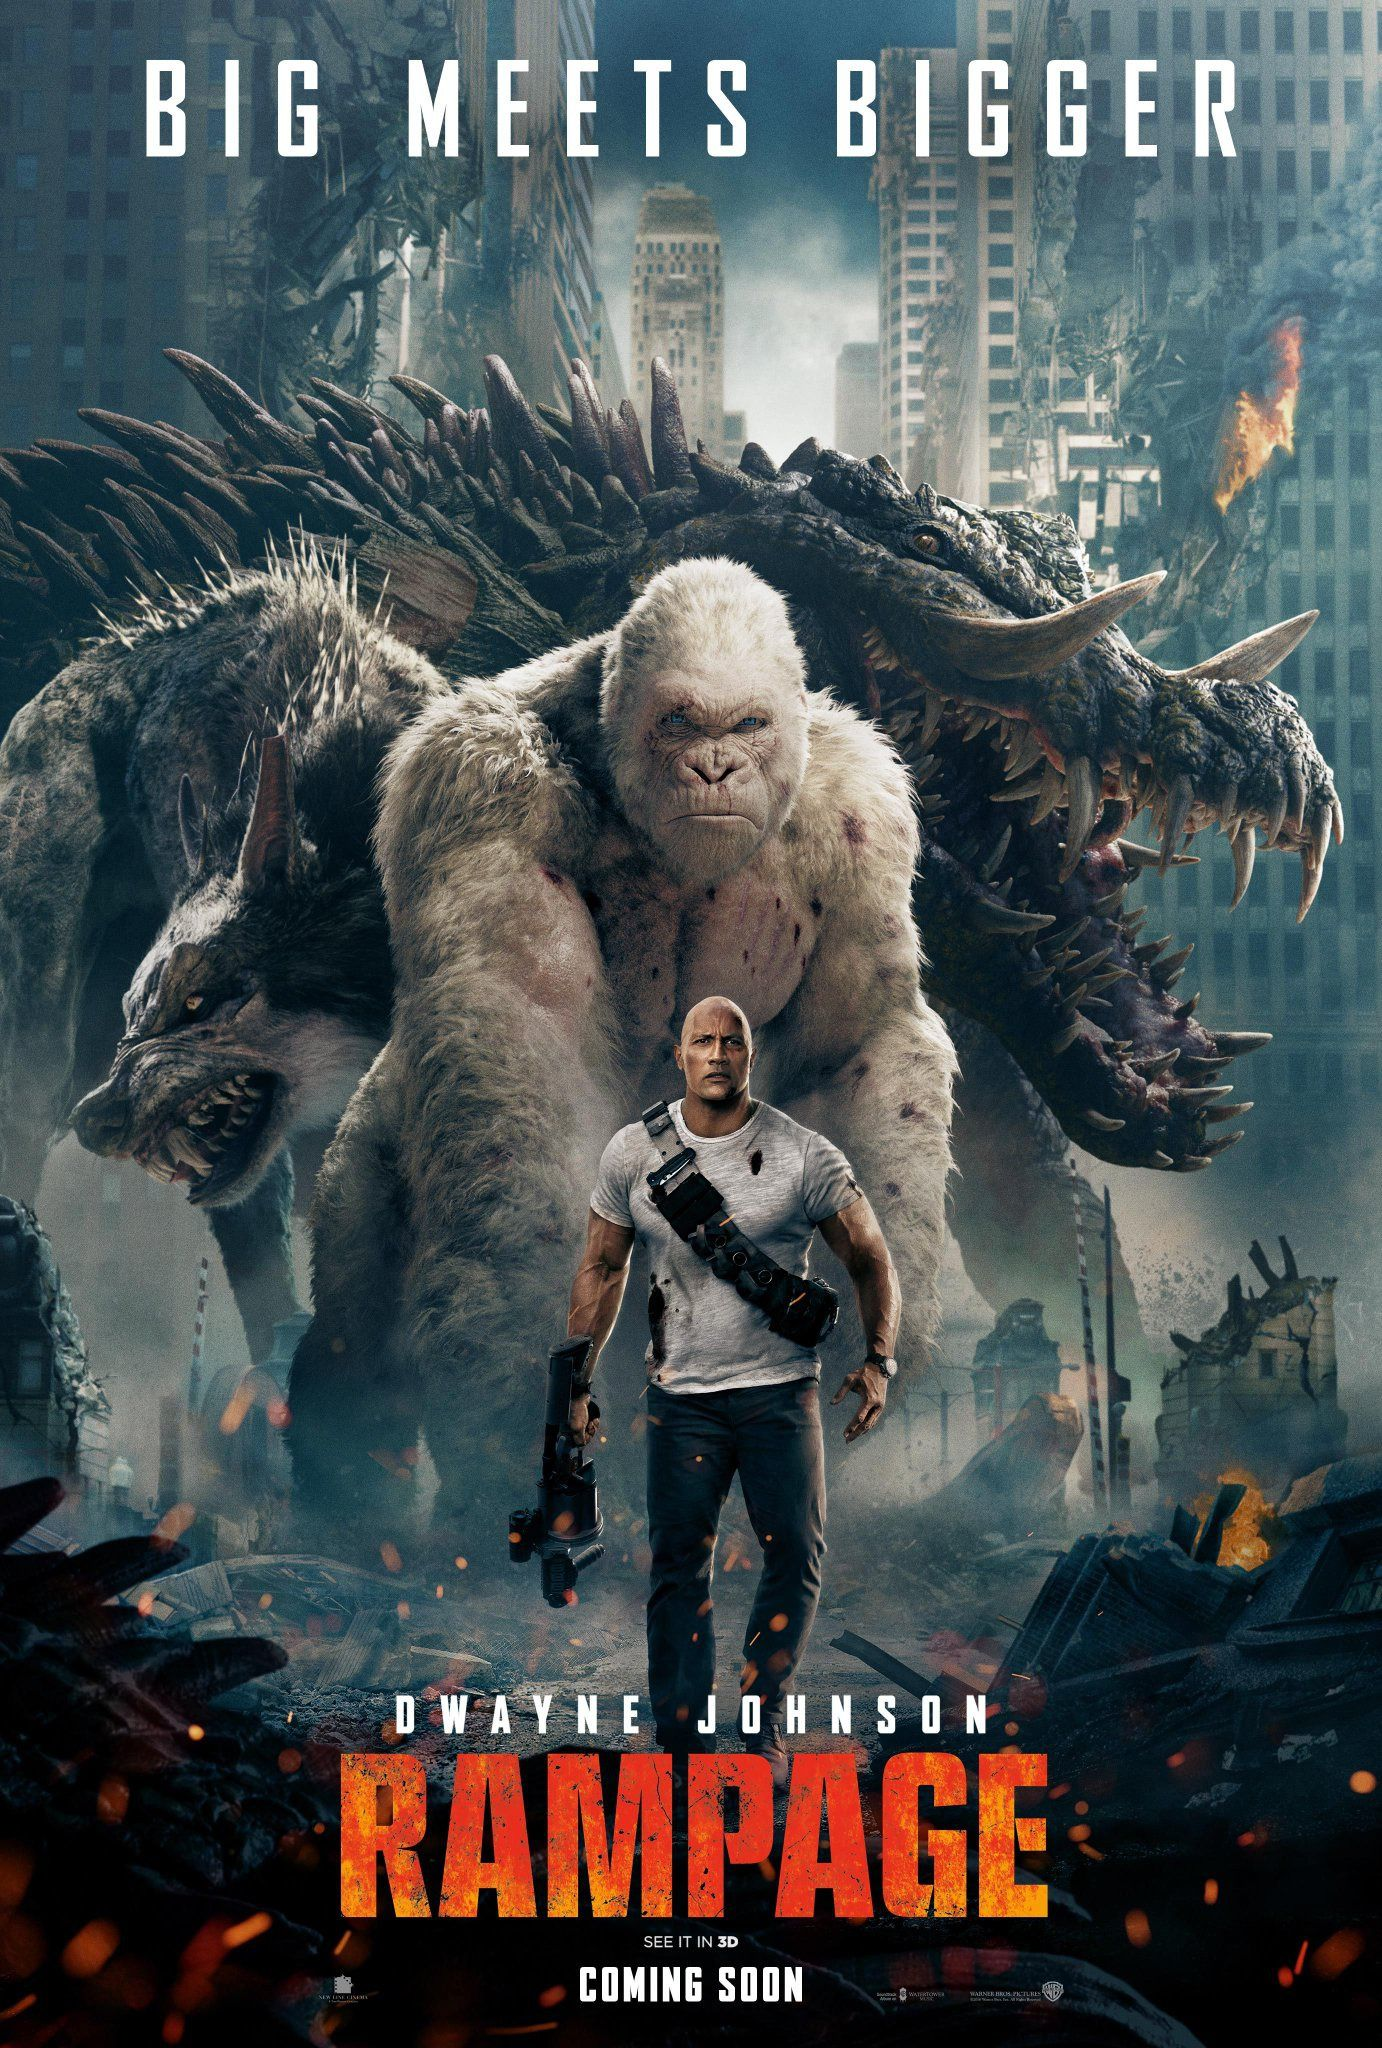 Rampage April 2018 It Was As Good As All His Other Movies With